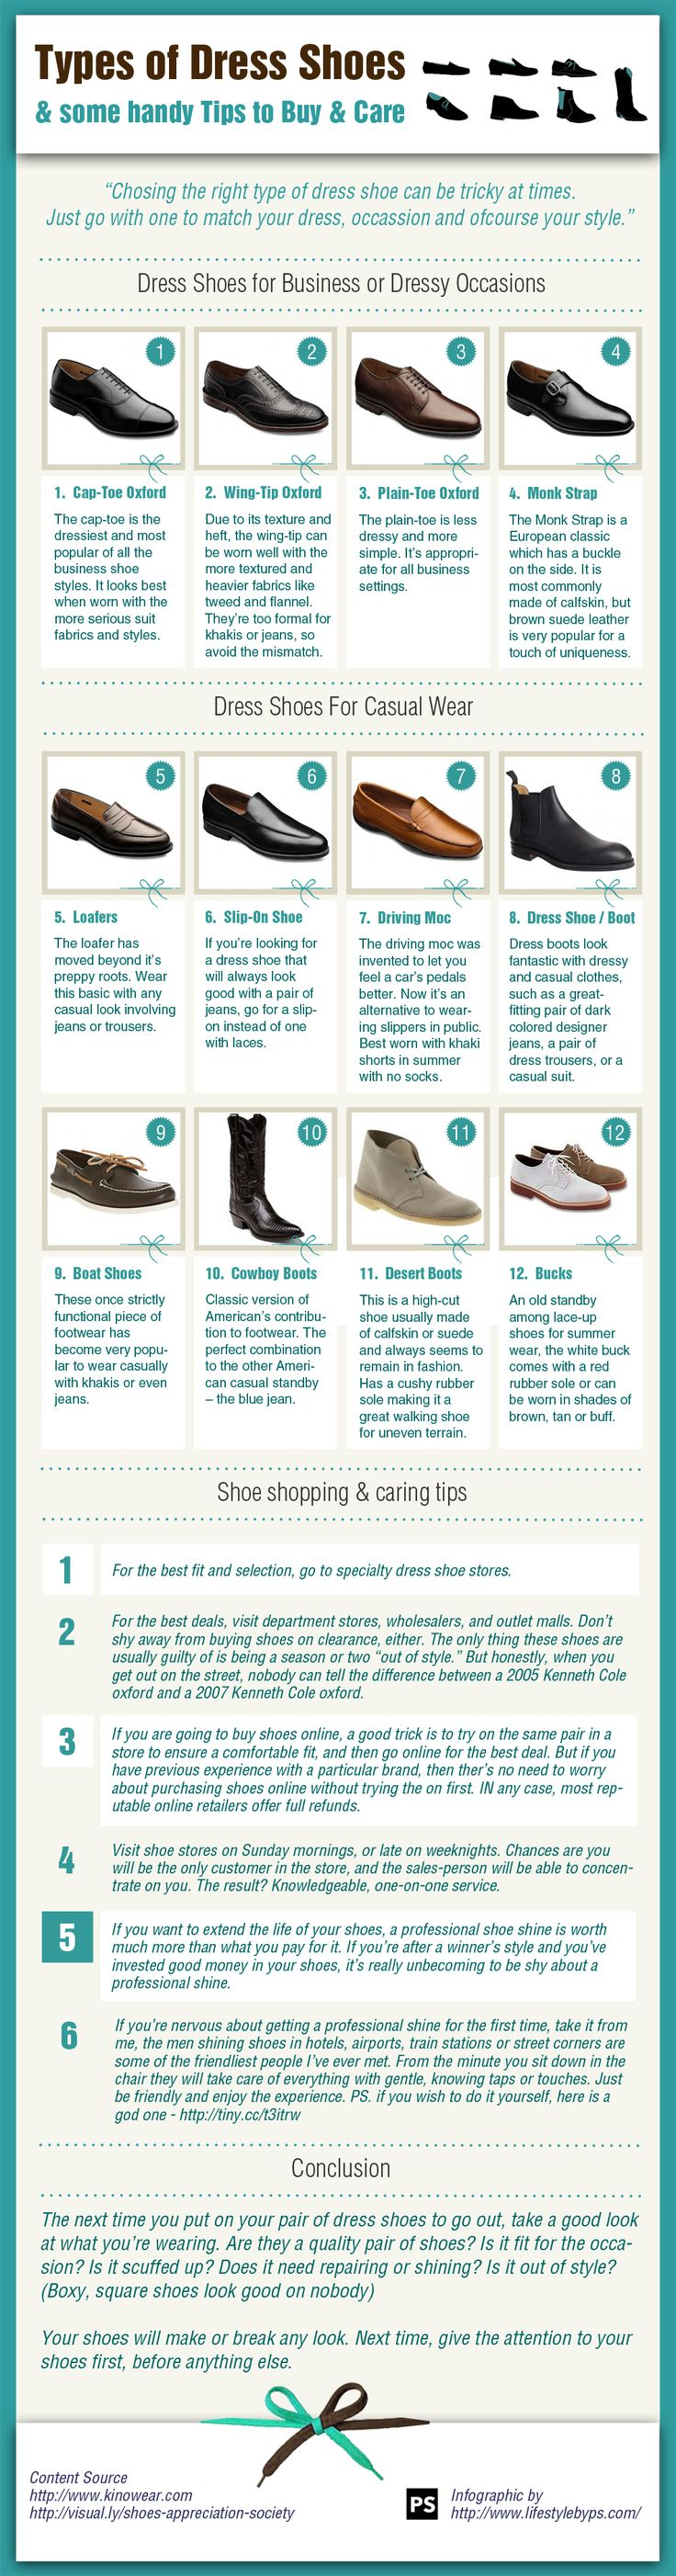 MEN'S SHOE TIPS: Dress shoes for Business, Dressy or Casual Wear.  ---> FOLLOW US ON PINTEREST for Style Tips, Men's Basics,  Men's Essentials on anything, OUR SALES etc... ~ VujuWear